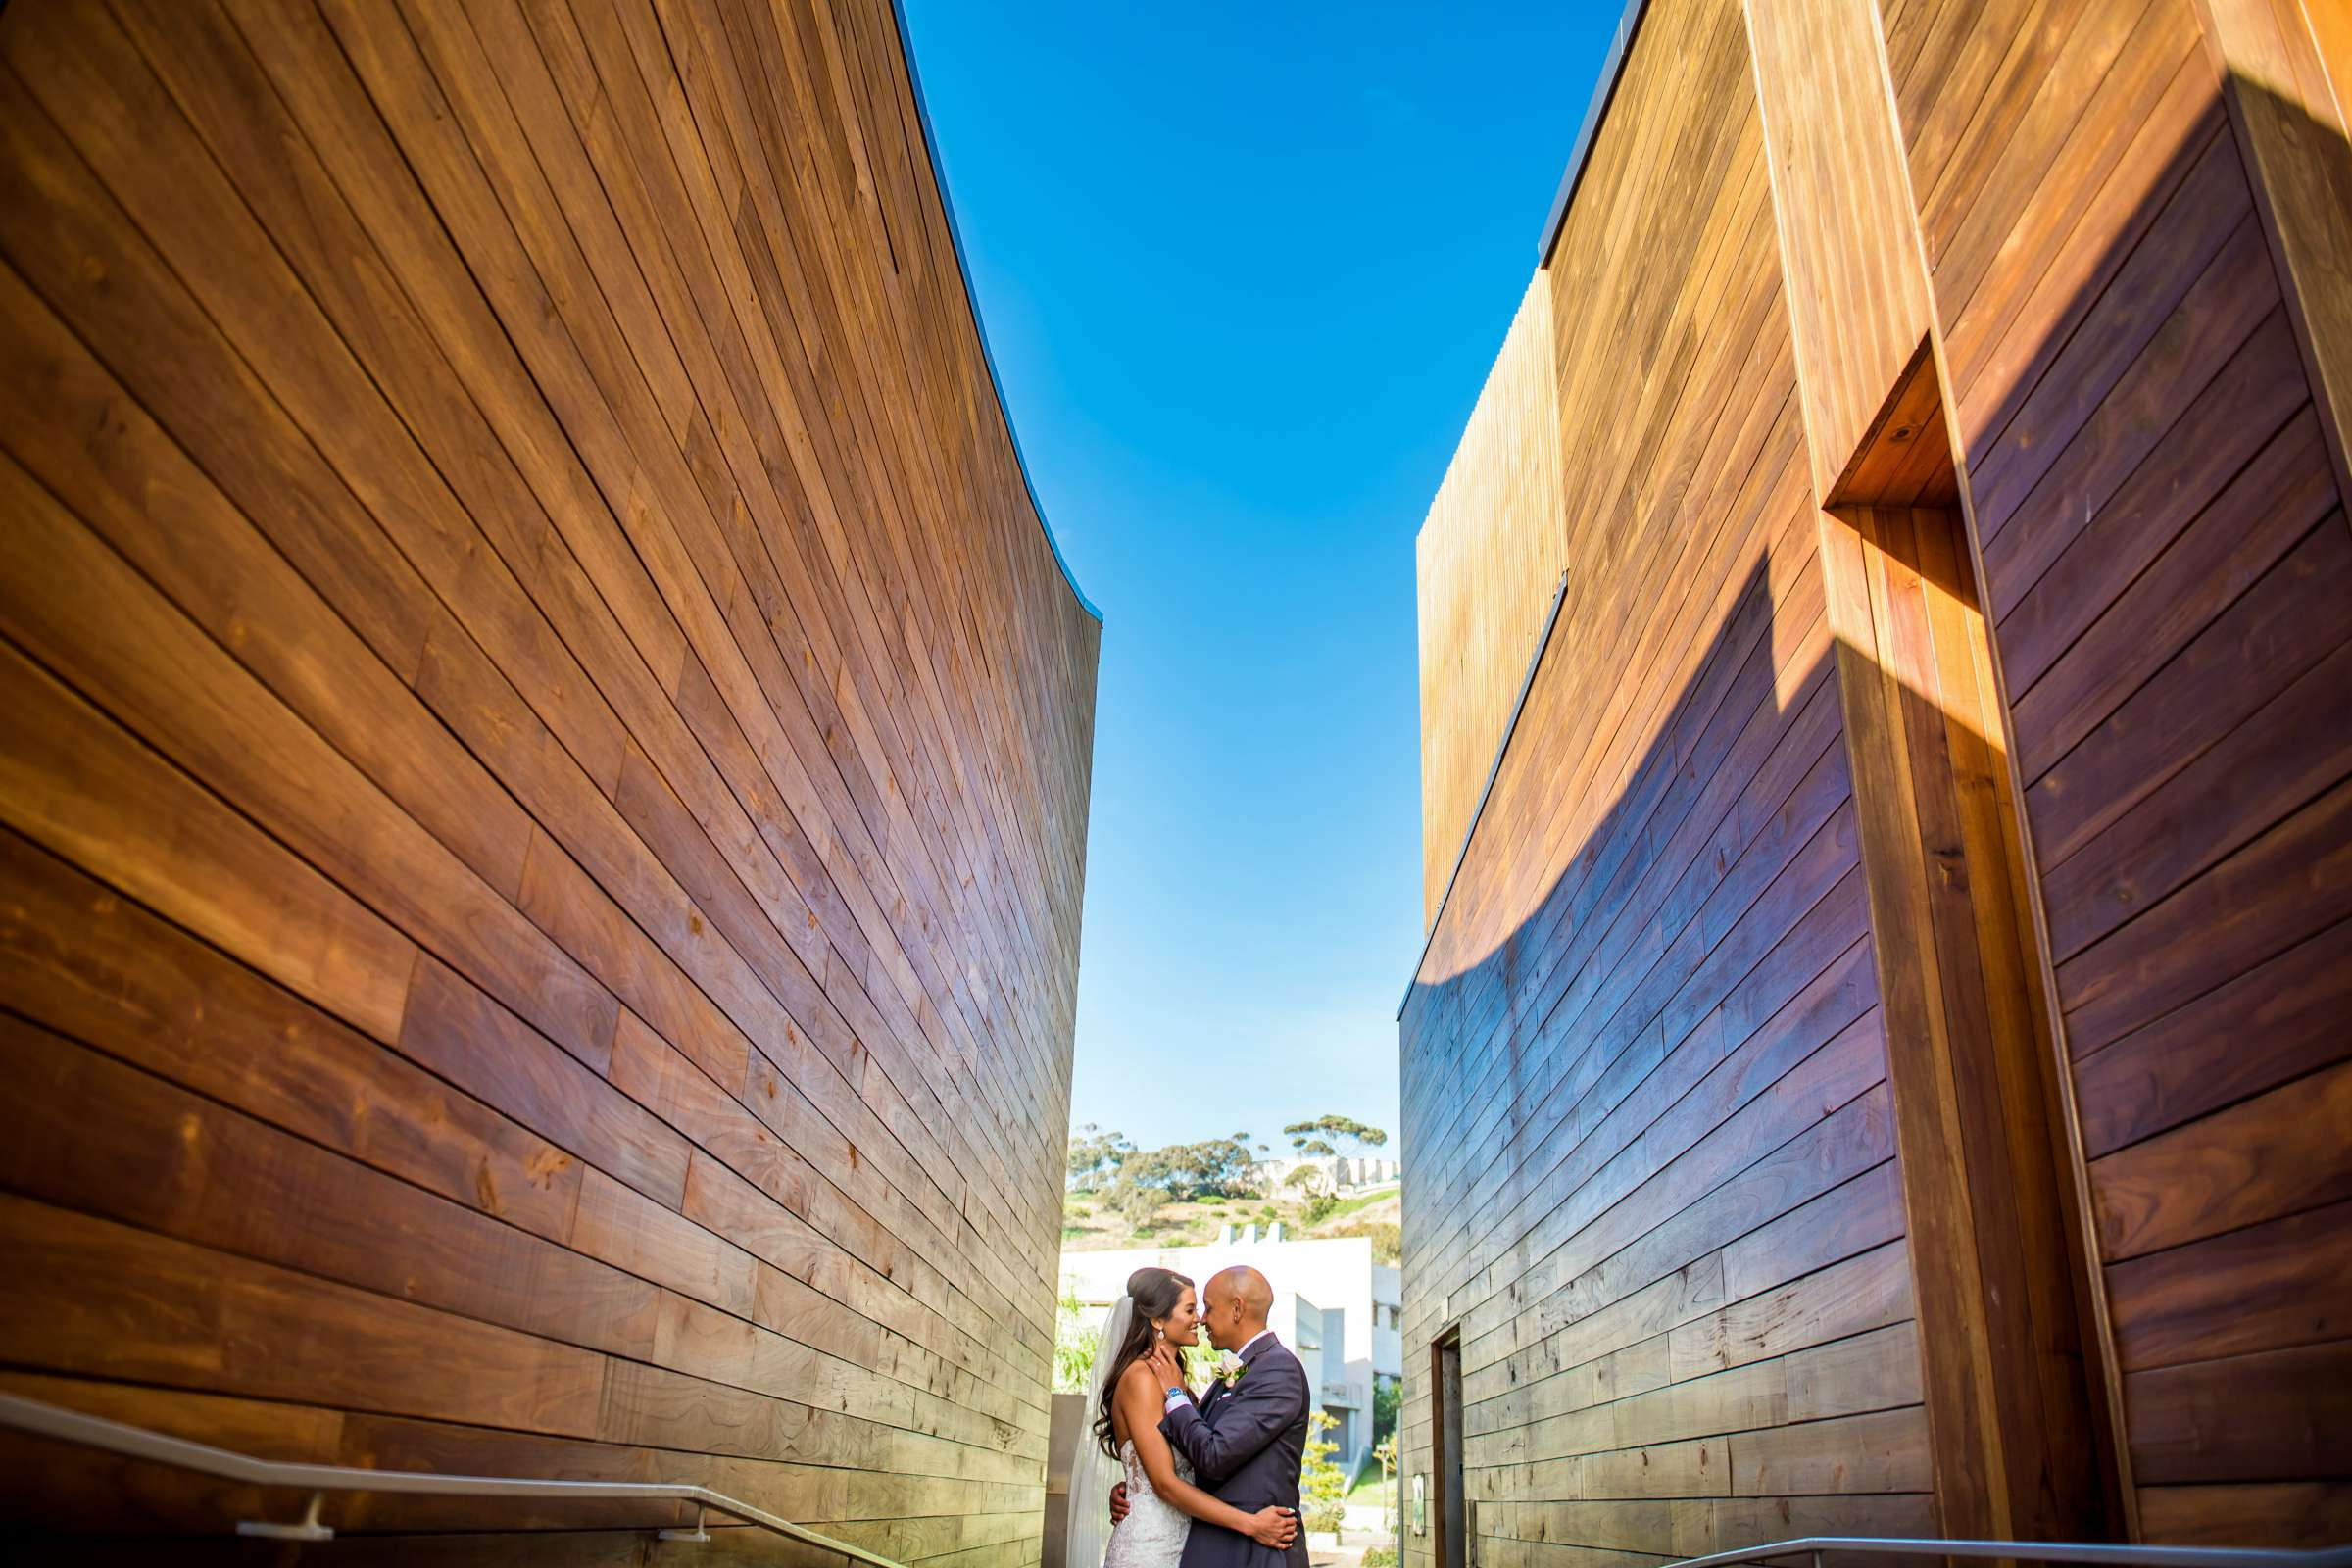 Scripps Seaside Forum Wedding coordinated by Lavish Weddings, Cindy and Justin Wedding Photo #381844 by True Photography